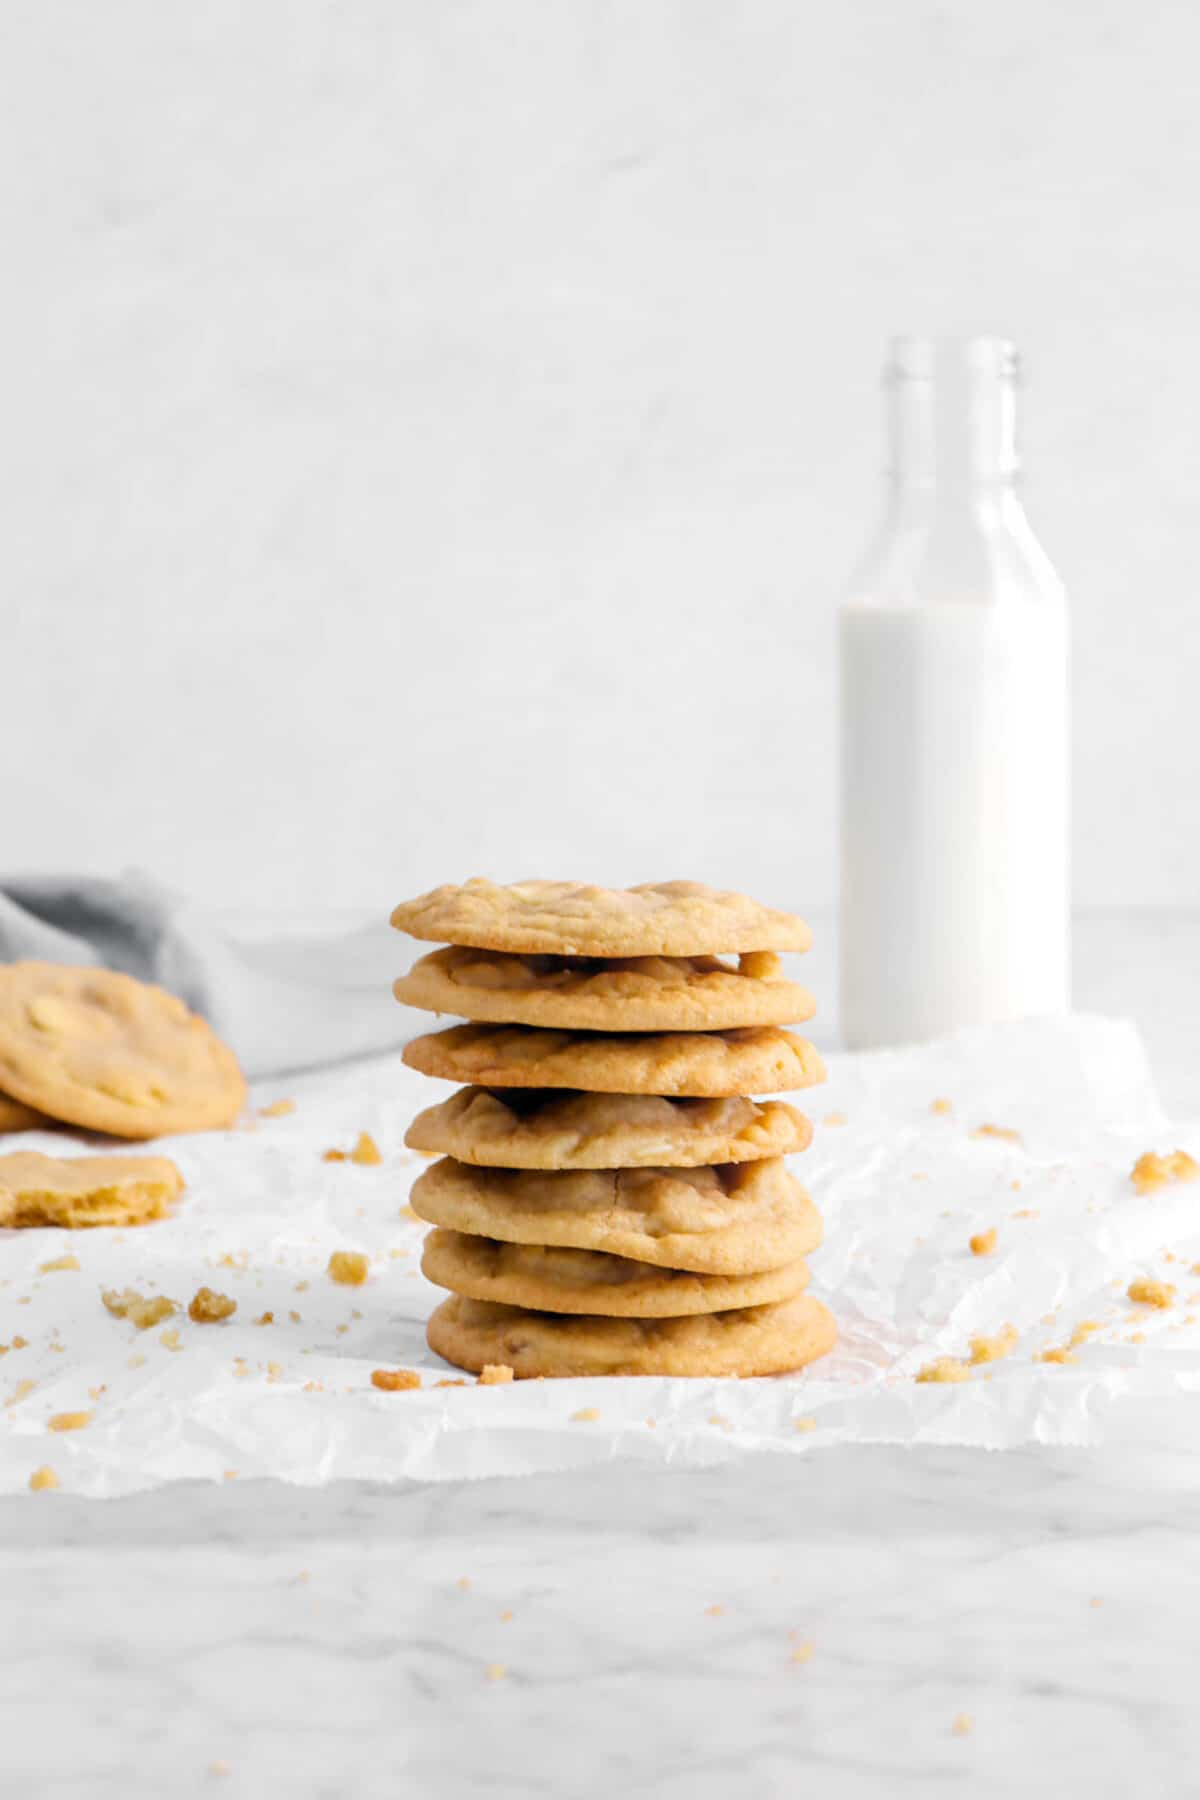 seven stacked cookies on parchment paper with cookie crumbs, a cookie behind, and a glass of milk